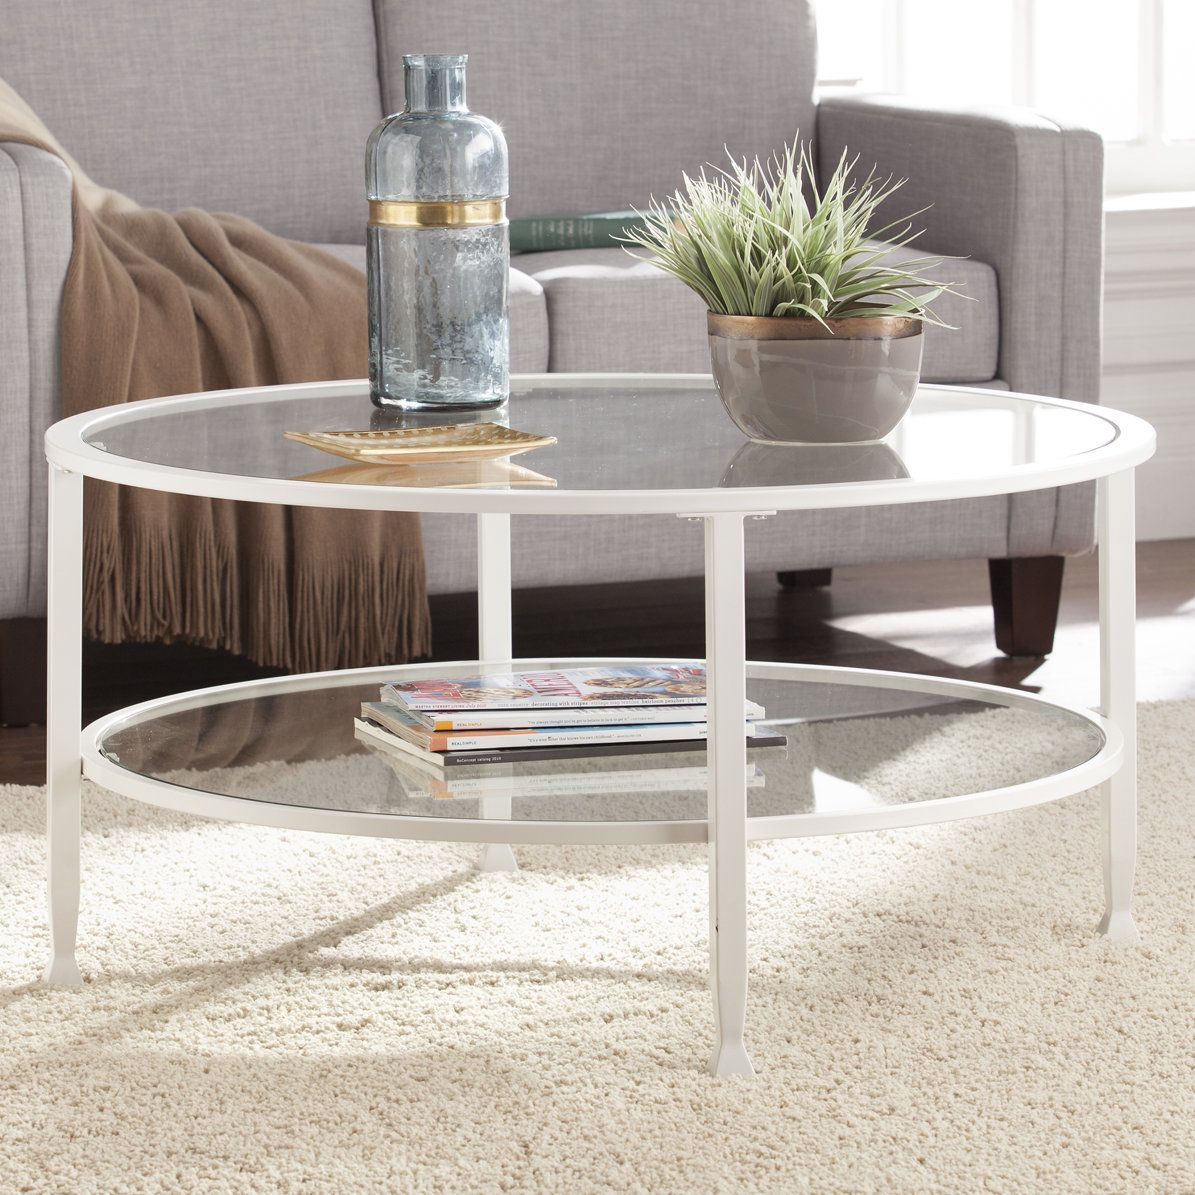 Kailani Metal And Glass Round Coffee Table White Coffee Table Modern Coffee Table Coffee Table White [ 1195 x 1195 Pixel ]